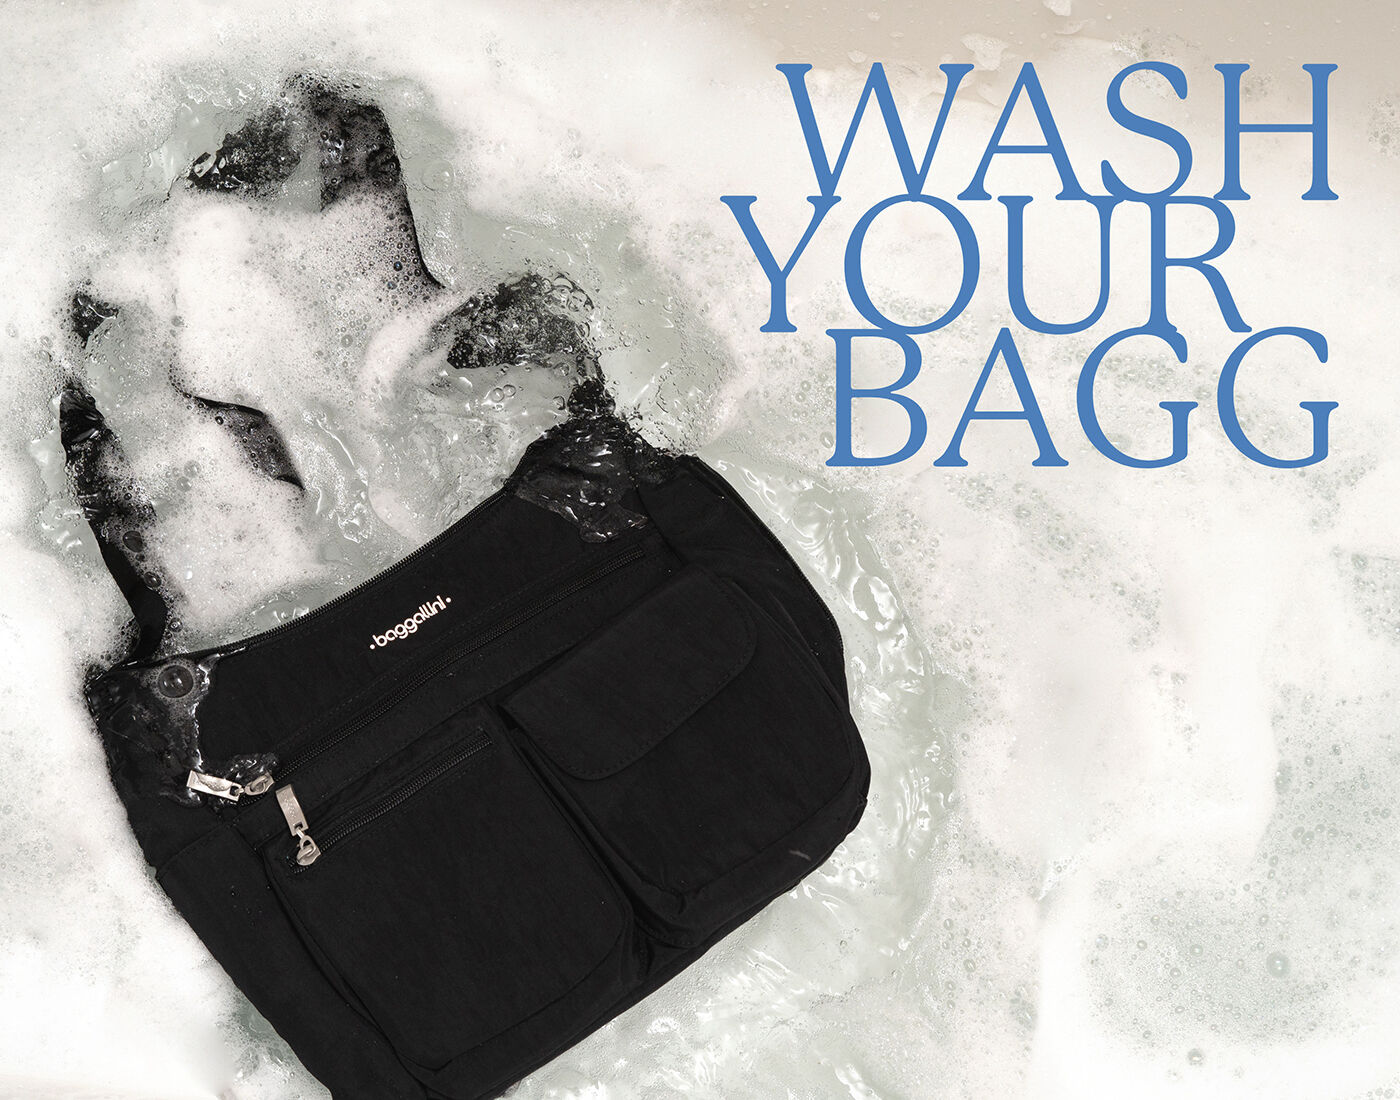 Get a quick refresh with our machine-washable bags